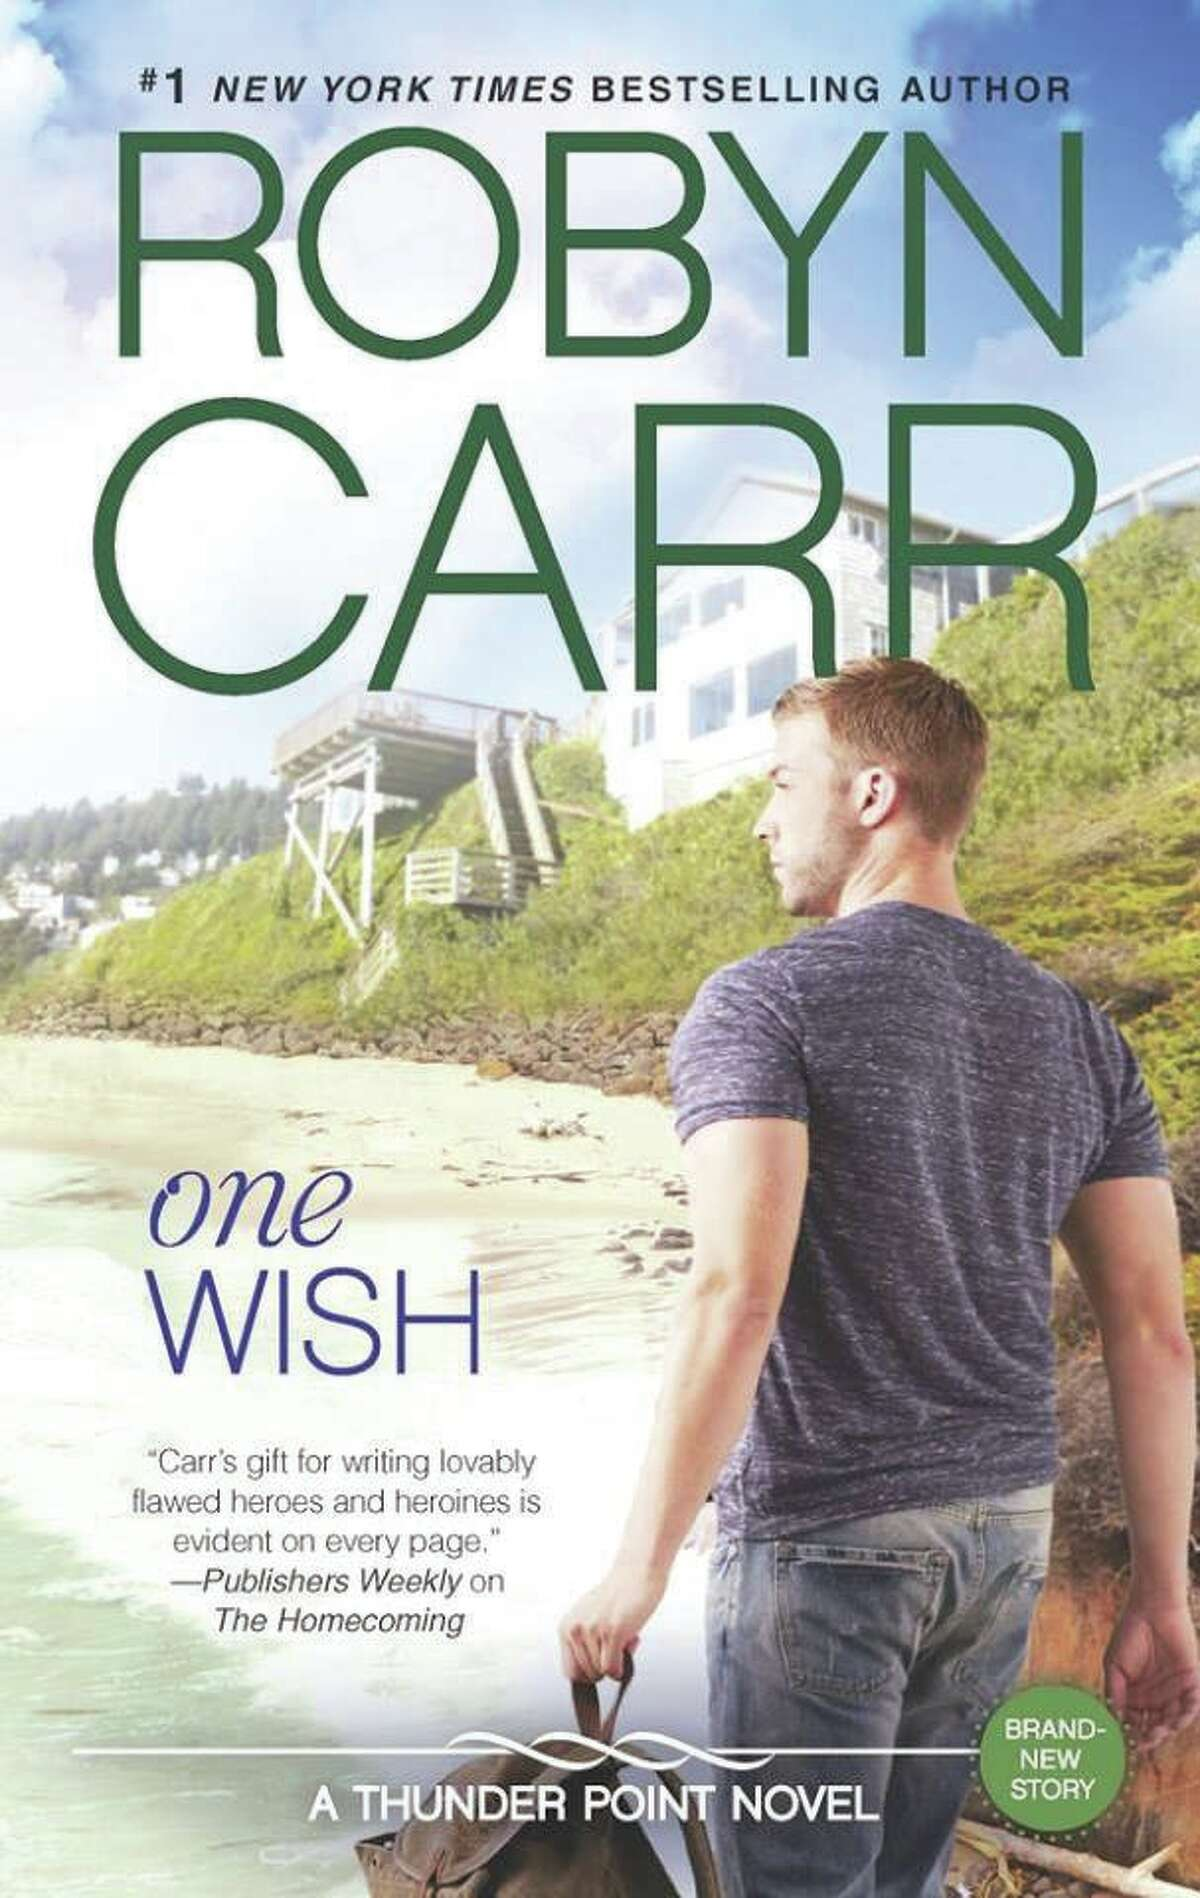 ONE WISH, by Robyn Carr.